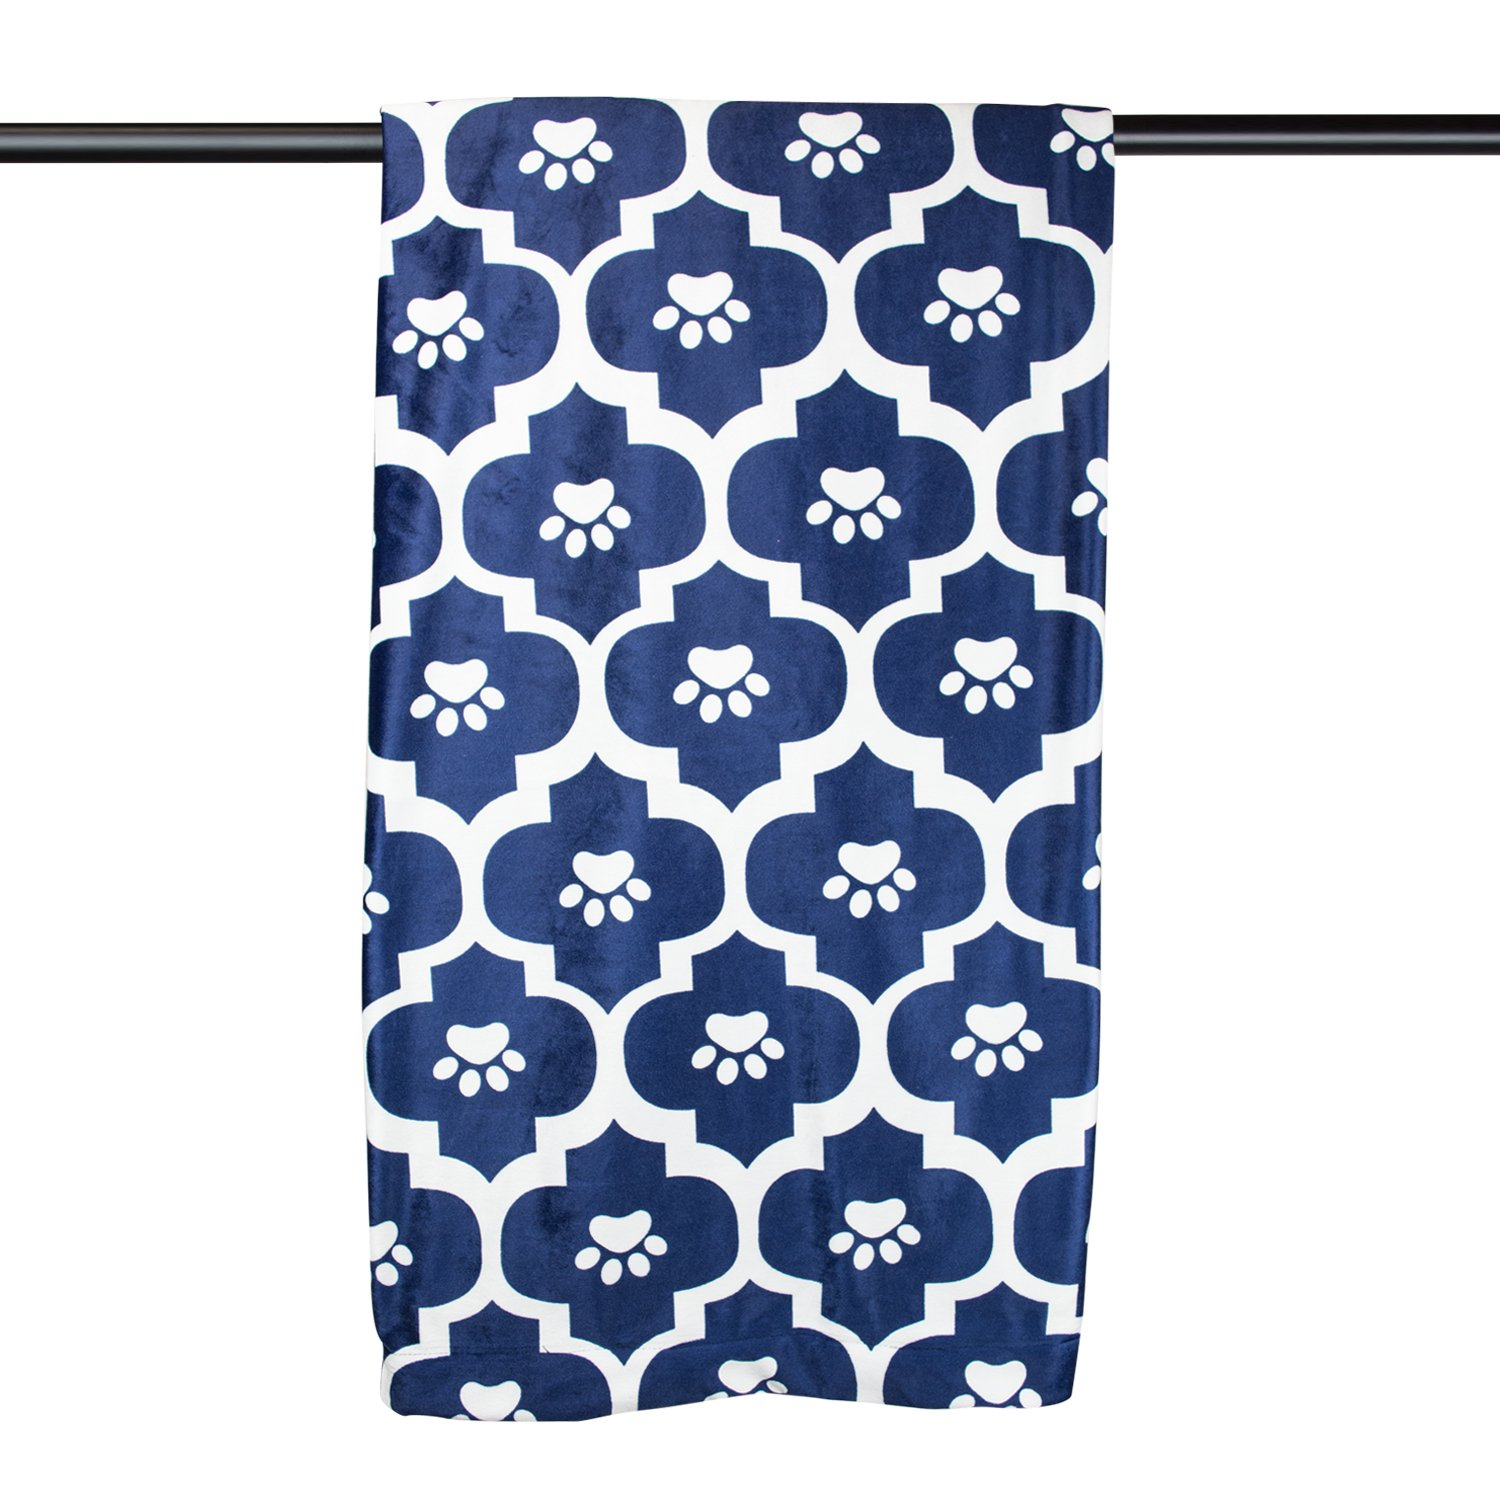 DII Bone Dry Very Warm, Silky Soft, Morrocan Paw Print Pet Blanket For Couch, Car, Trunk, Cage, Kennel, Or Dog House, 48x67'', Blue by Bone Dry